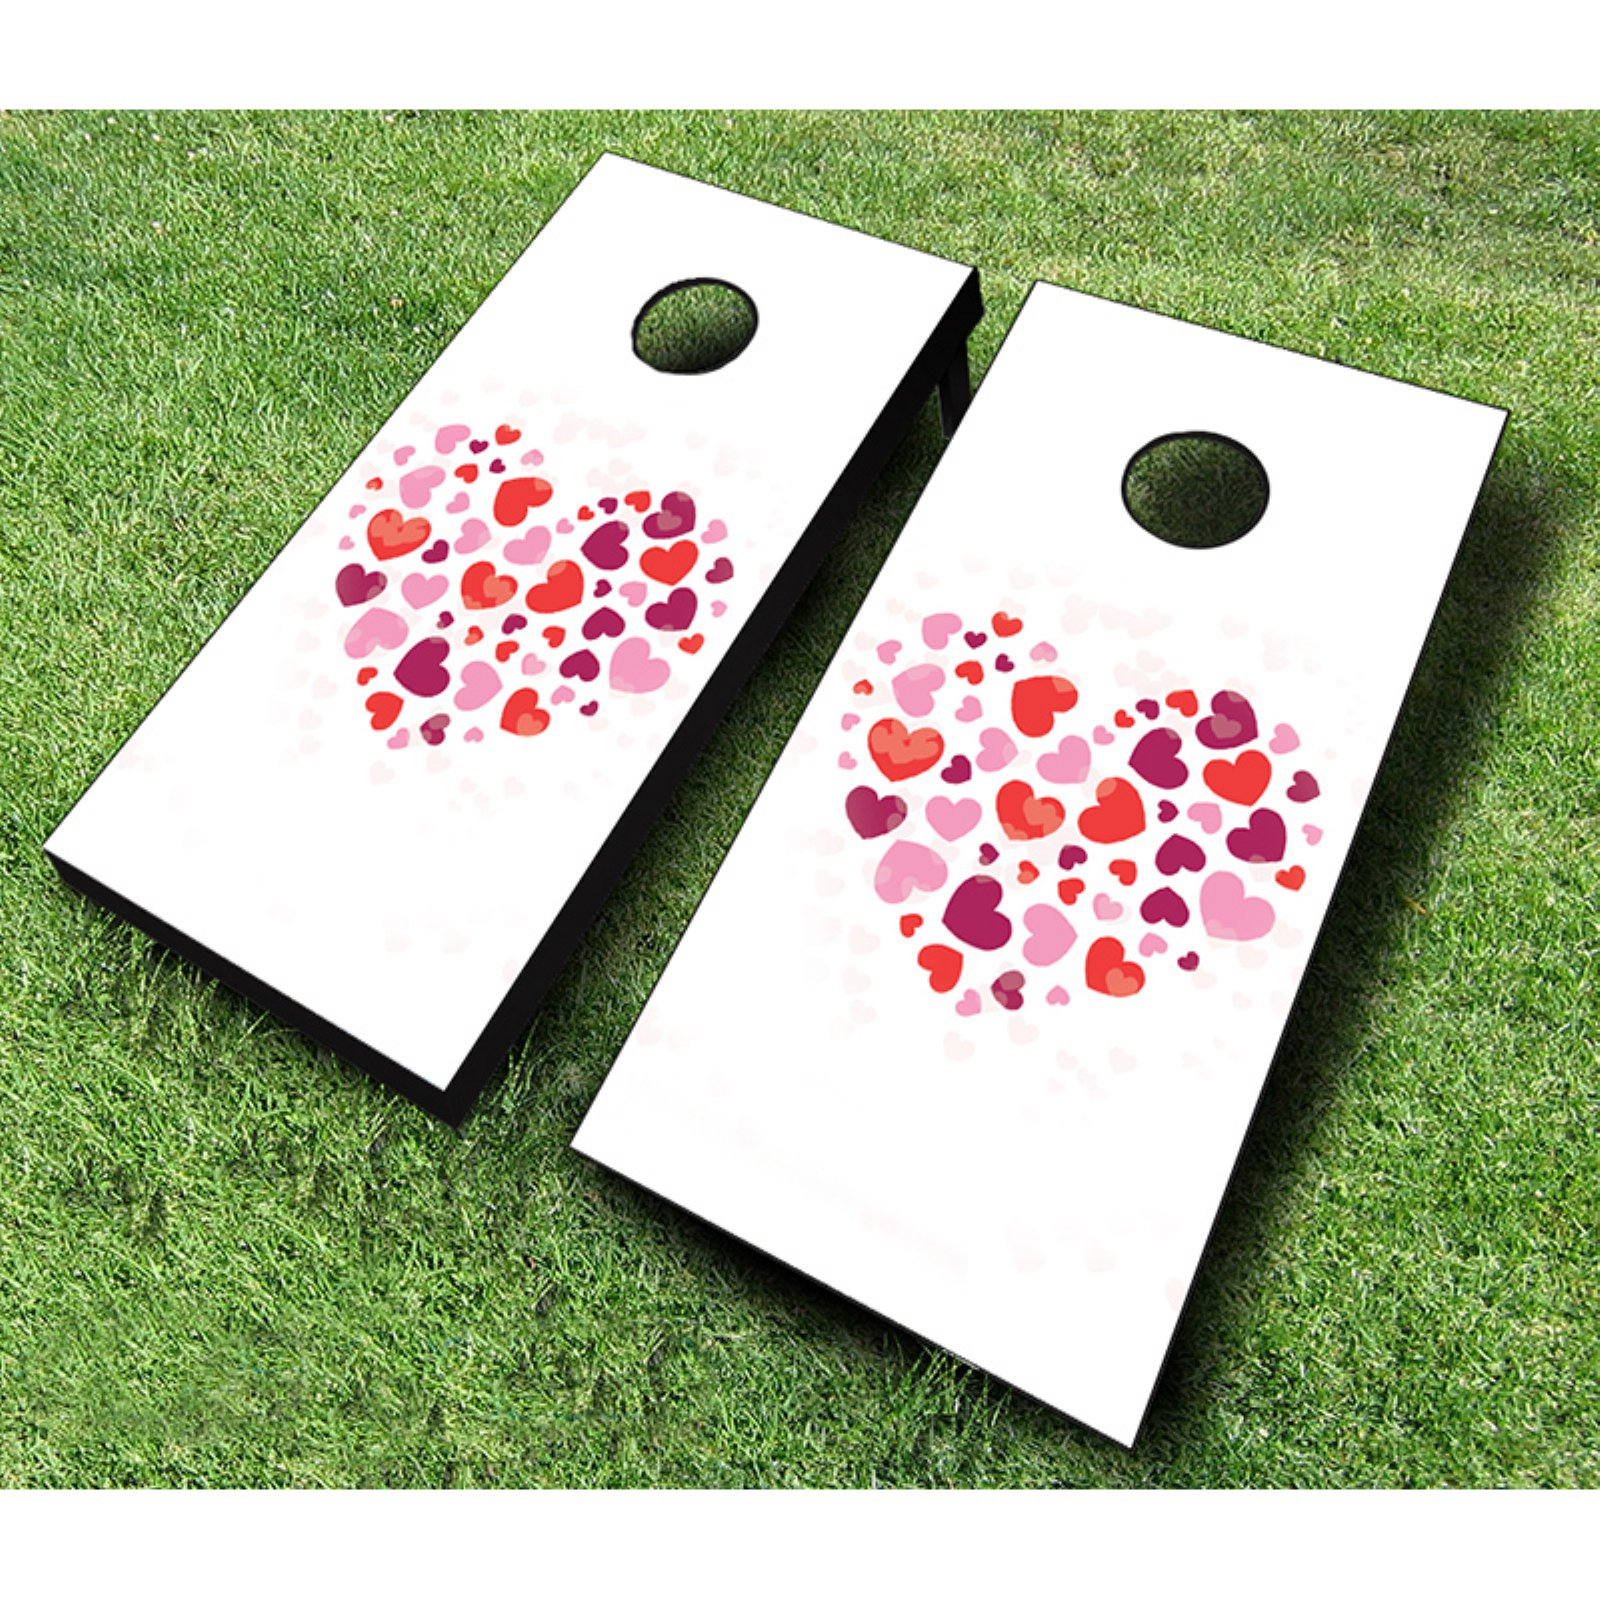 AJJ Cornhole Heart Heart Cornhole Set by